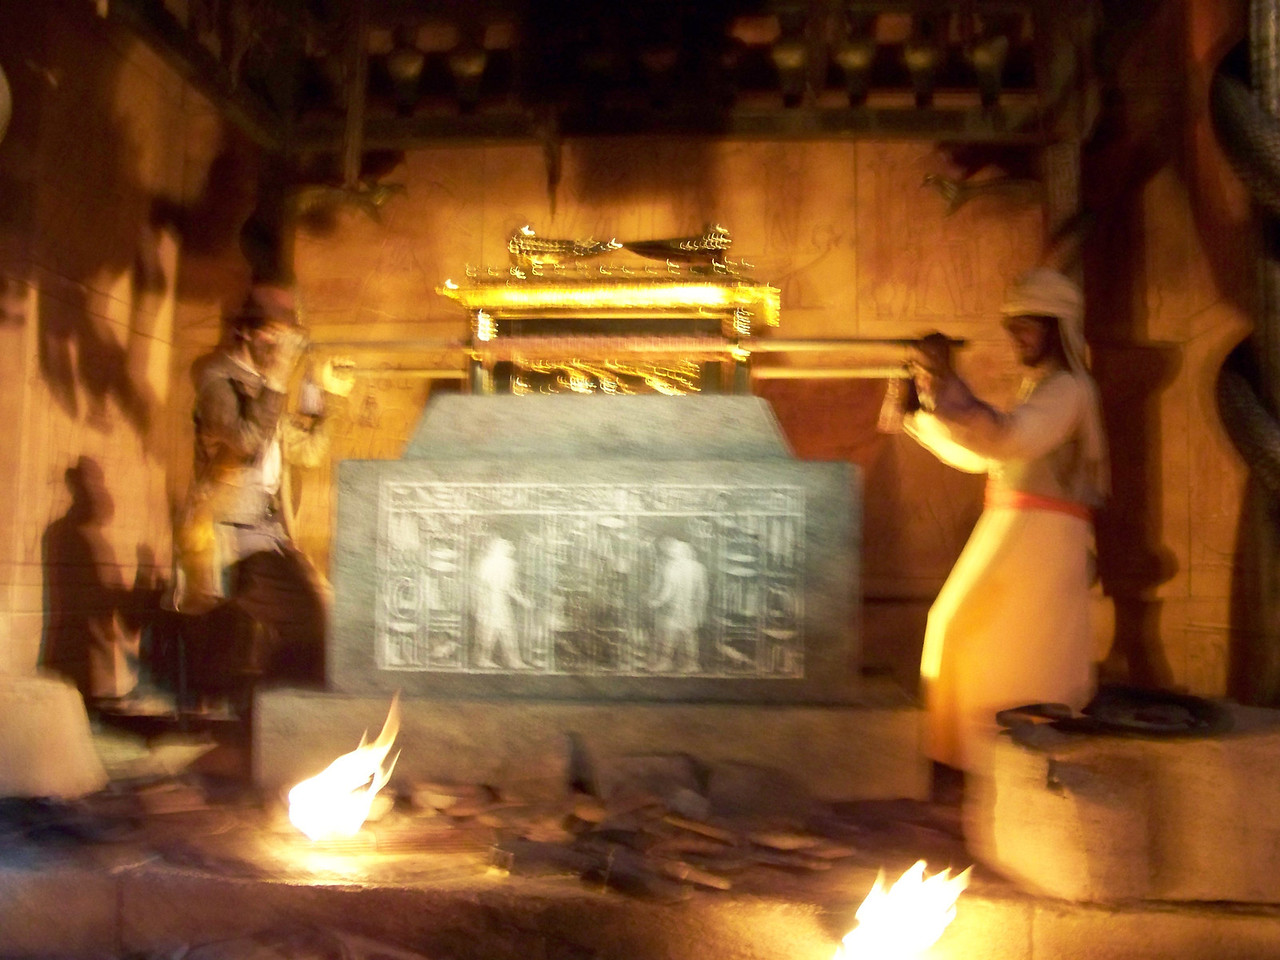 Indiana Jones and his good friend Sallah discover the golden relic in a scene from Raiders of the Lost Ark.  Watch out for those snakes!<br /> [Disney's Hollywood Studios - Great Movie Ride]